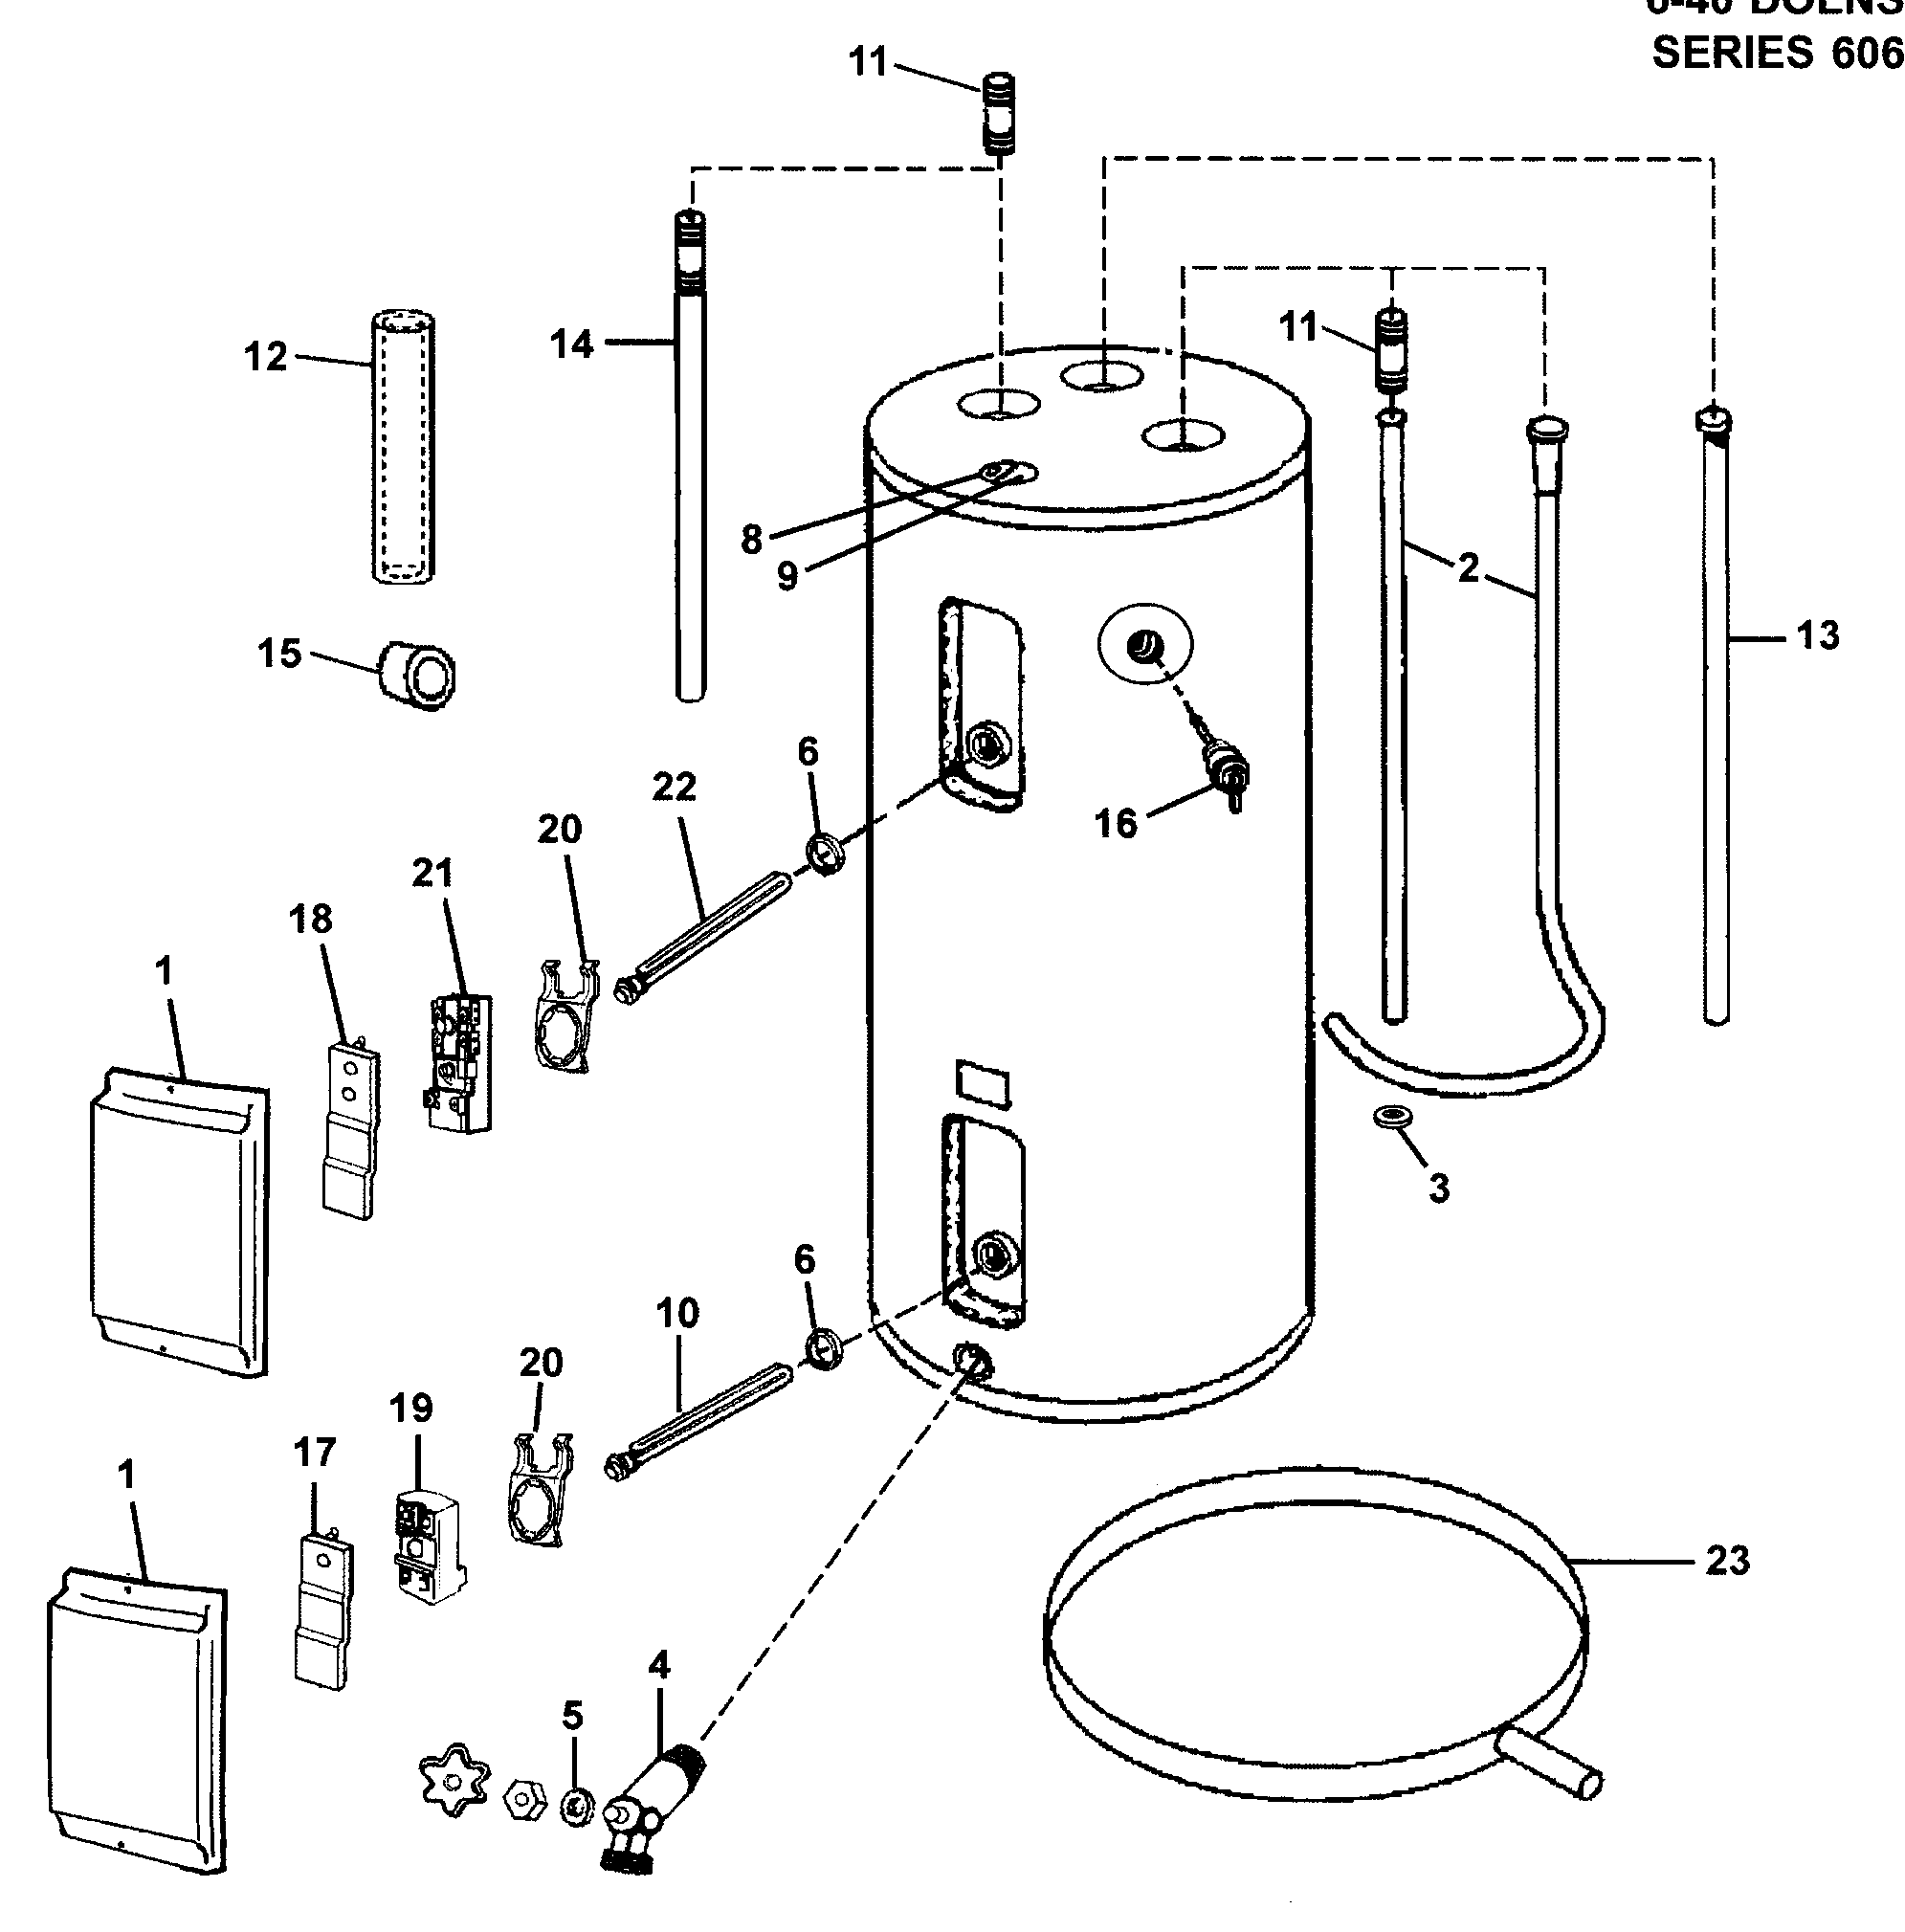 rheem water heater wiring schematic ok 2473  wiring diagrams moreover electric tankless water heater  moreover electric tankless water heater